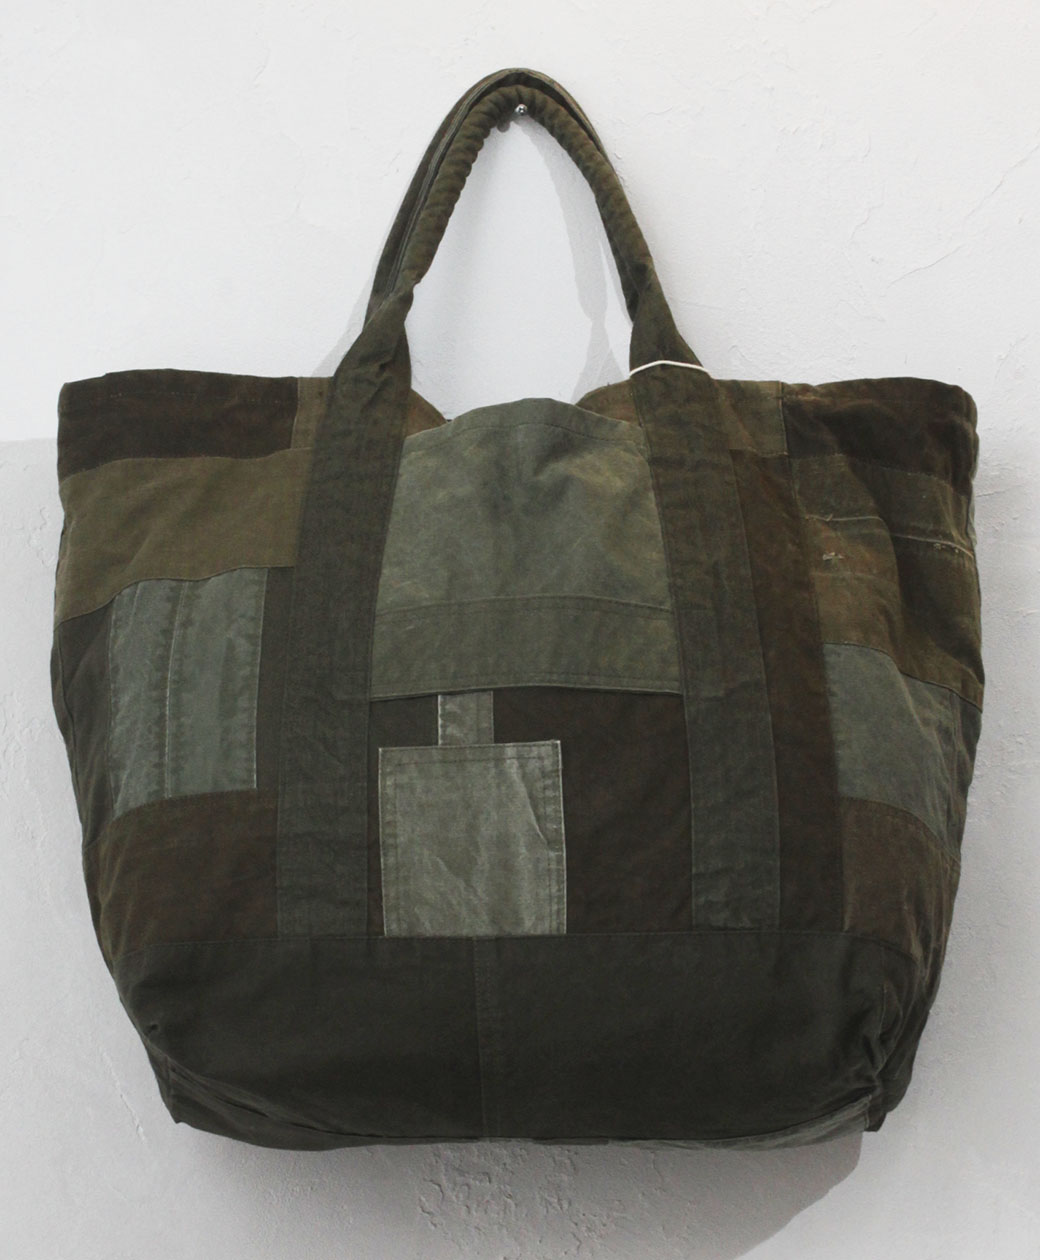 hobo COTTON US ARMY CLOTH PATCHWORK TOTE BAG L(OLIVE)